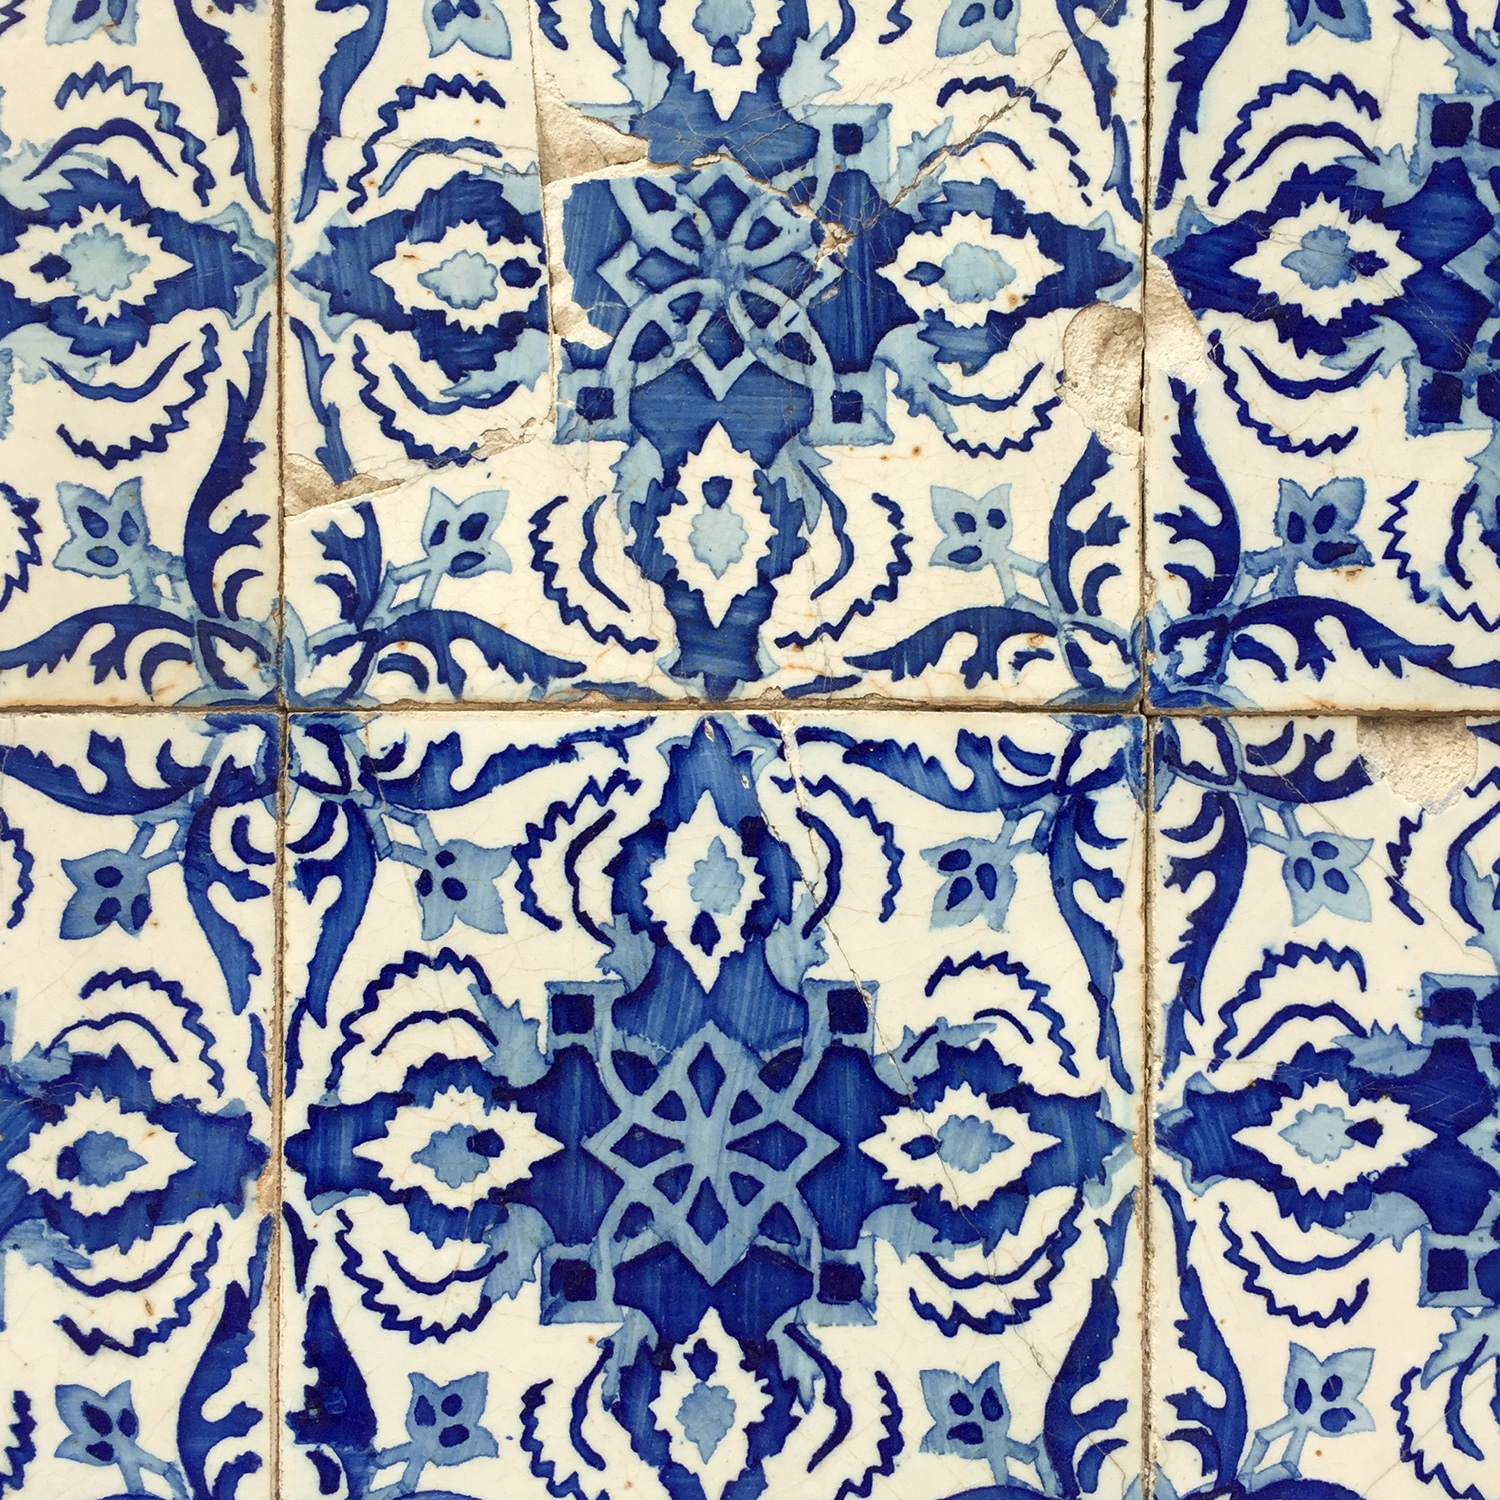 Antique Blue Tiles.jpg